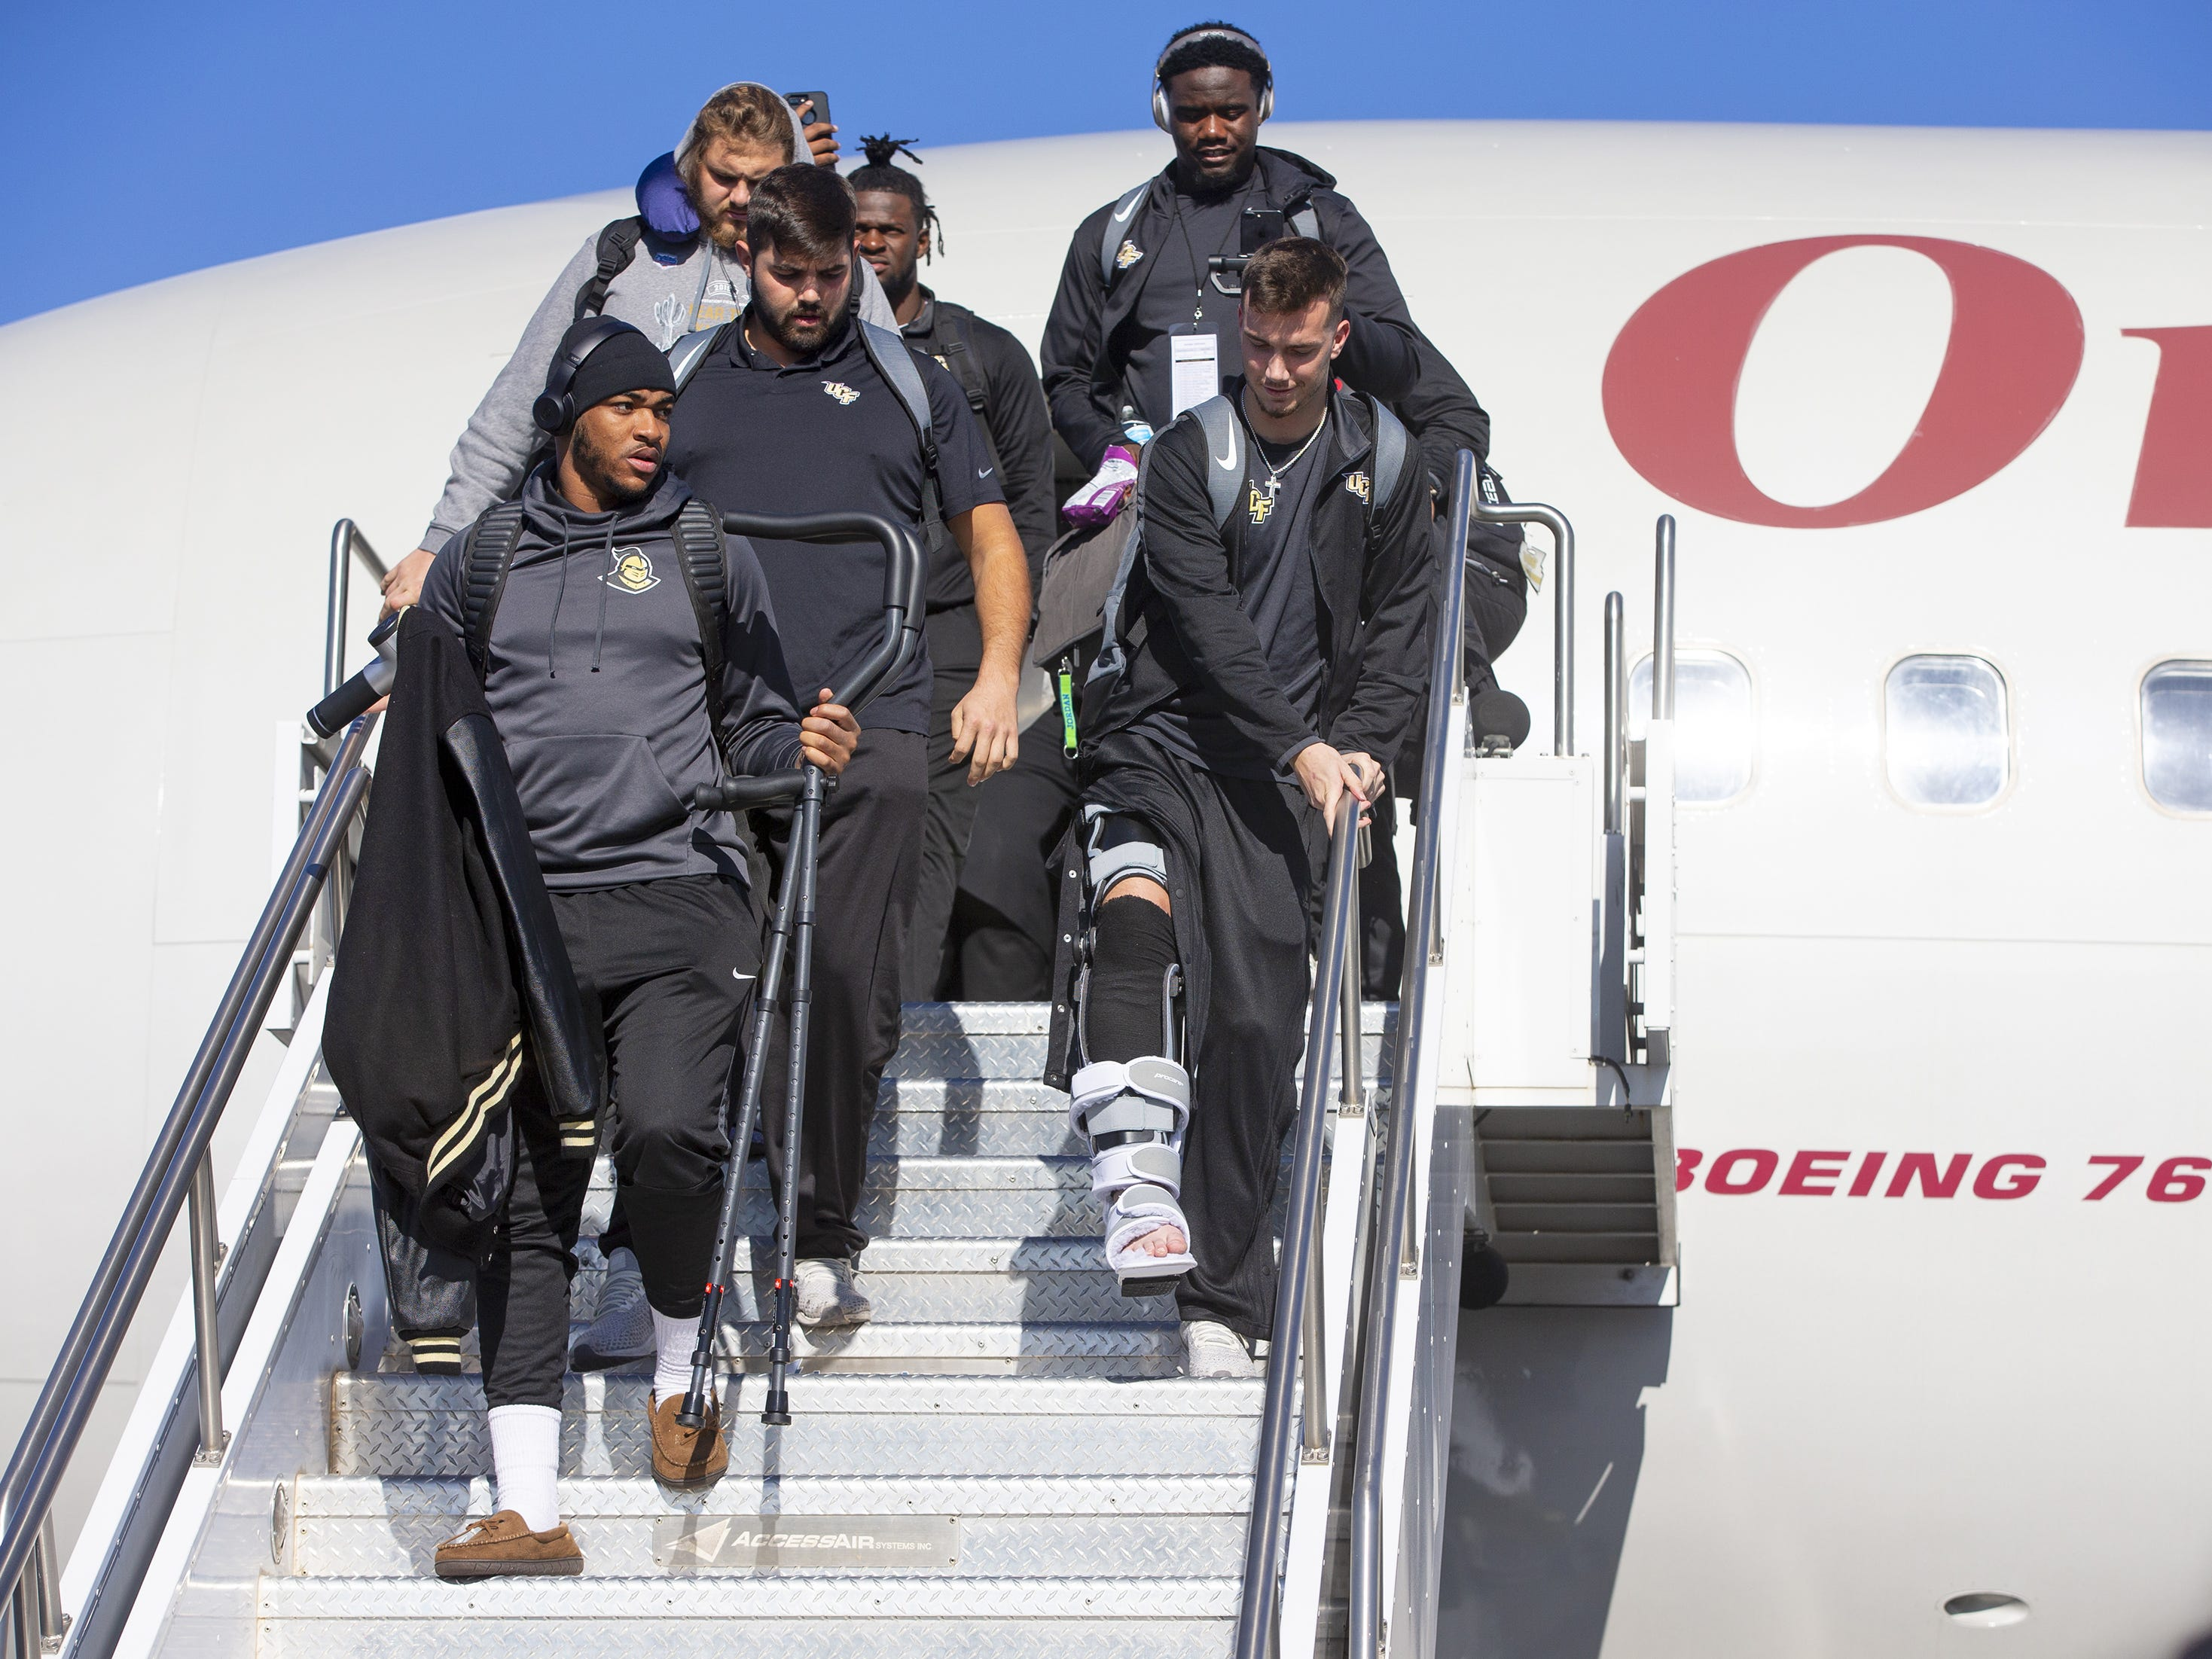 Injured Central Florida quarterback McKenzie Milton, arrives with his team at Sky Harbor International Airport in Phoenix on December 27. Central Florida will face LSU in the Fiesta Bowl on New Year's Day.